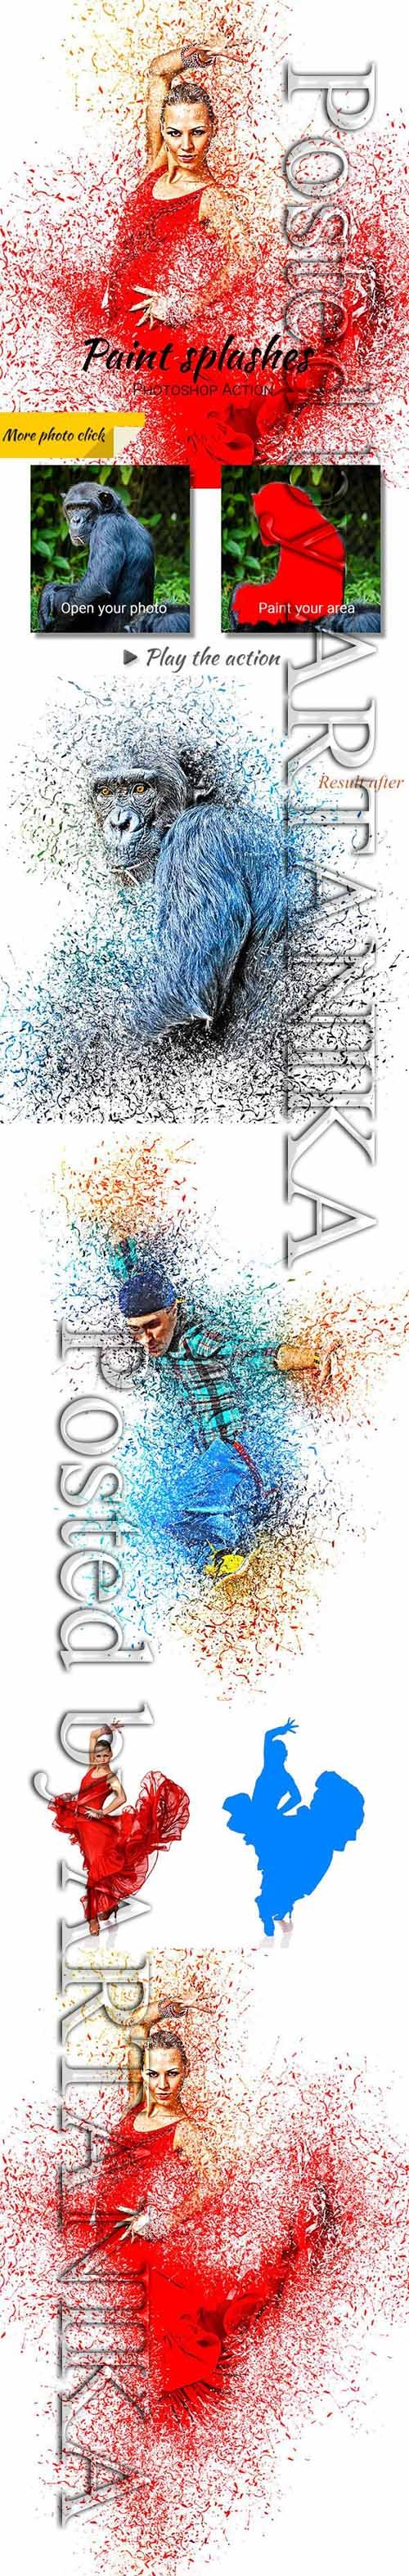 GraphicRiver - Paint Splashes Photoshop Action 23153270